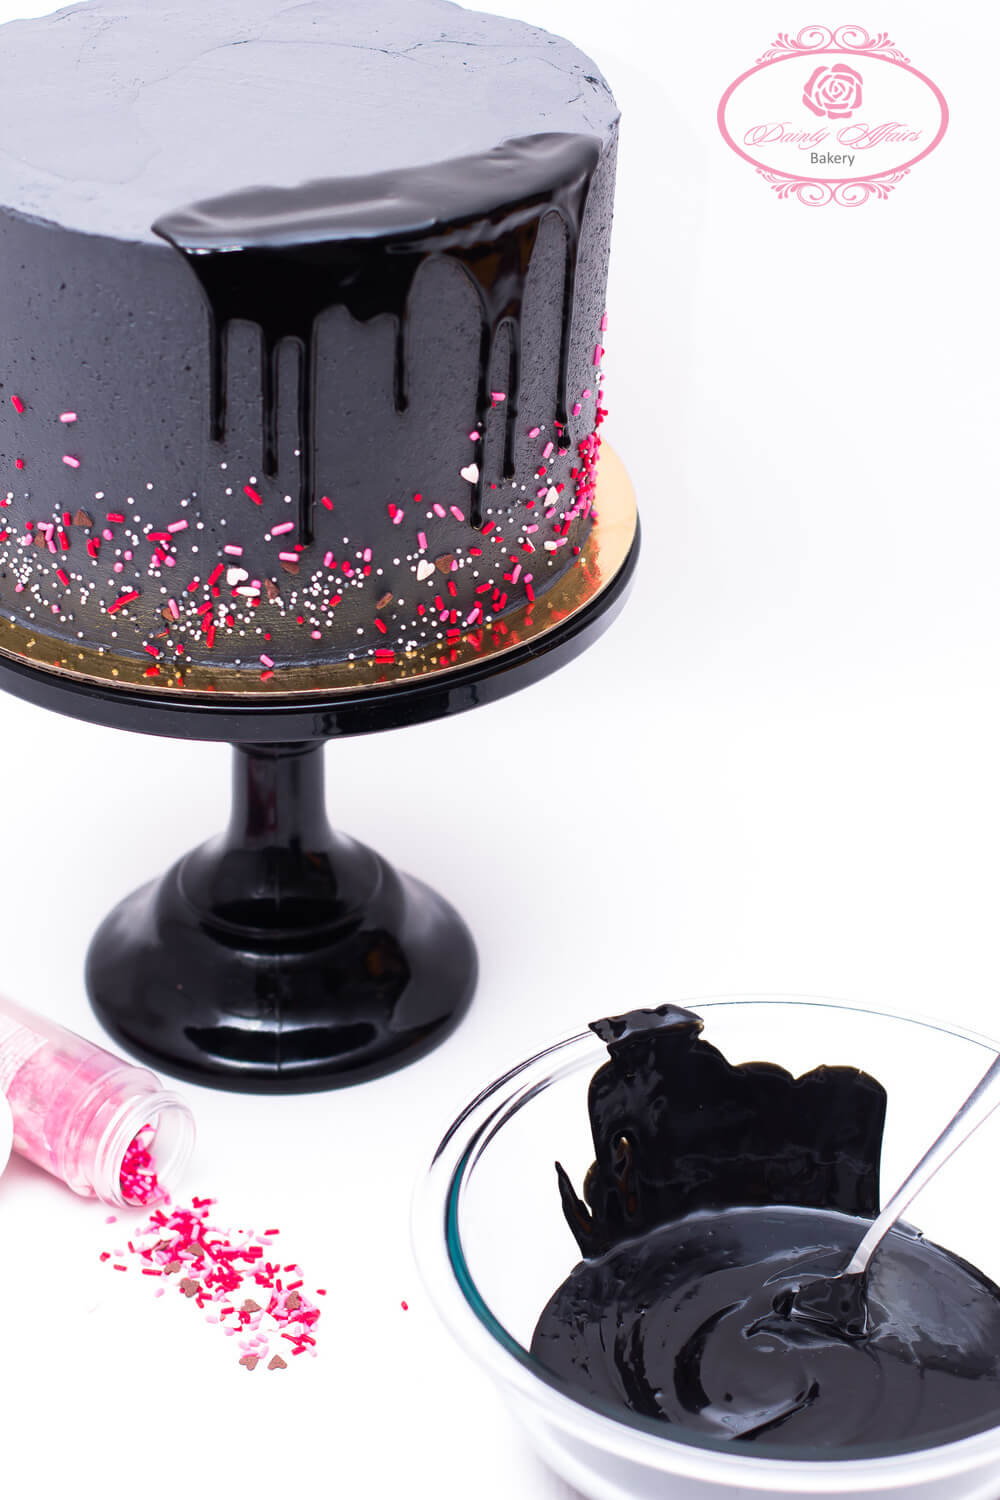 How To Make A Black Drip Cake Dainty Affairs Bakery Cakes